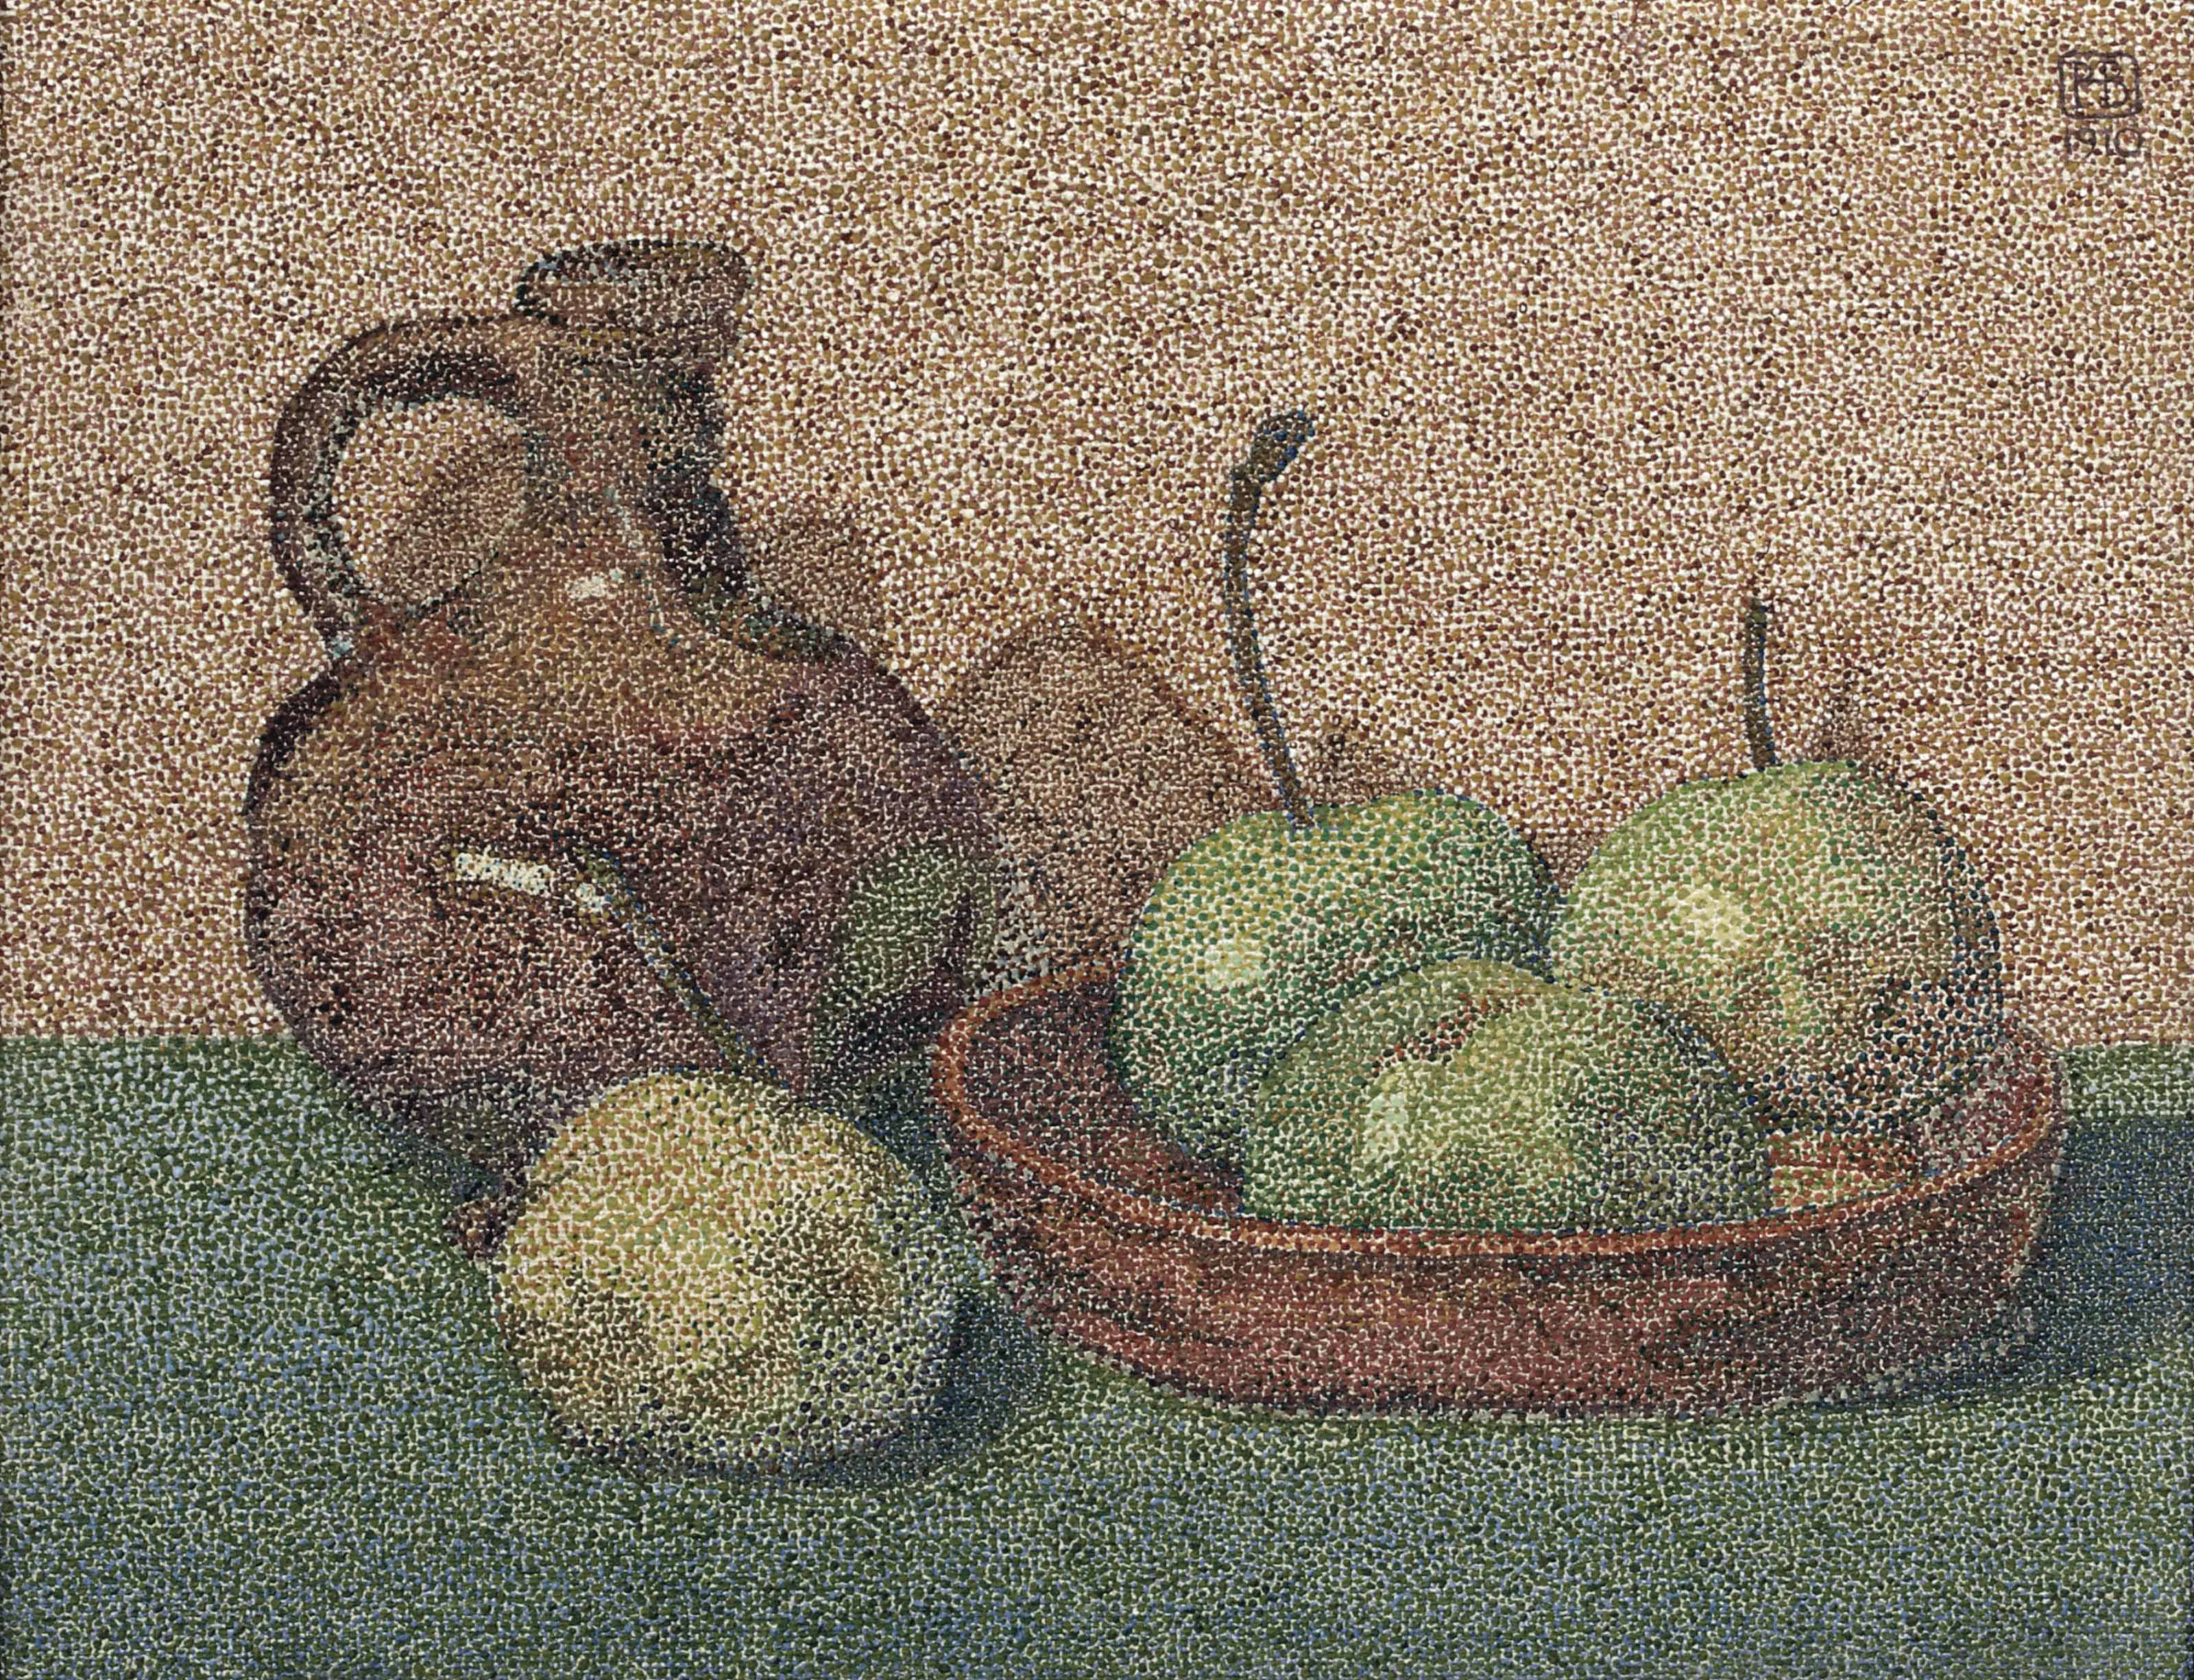 A still life with green apples